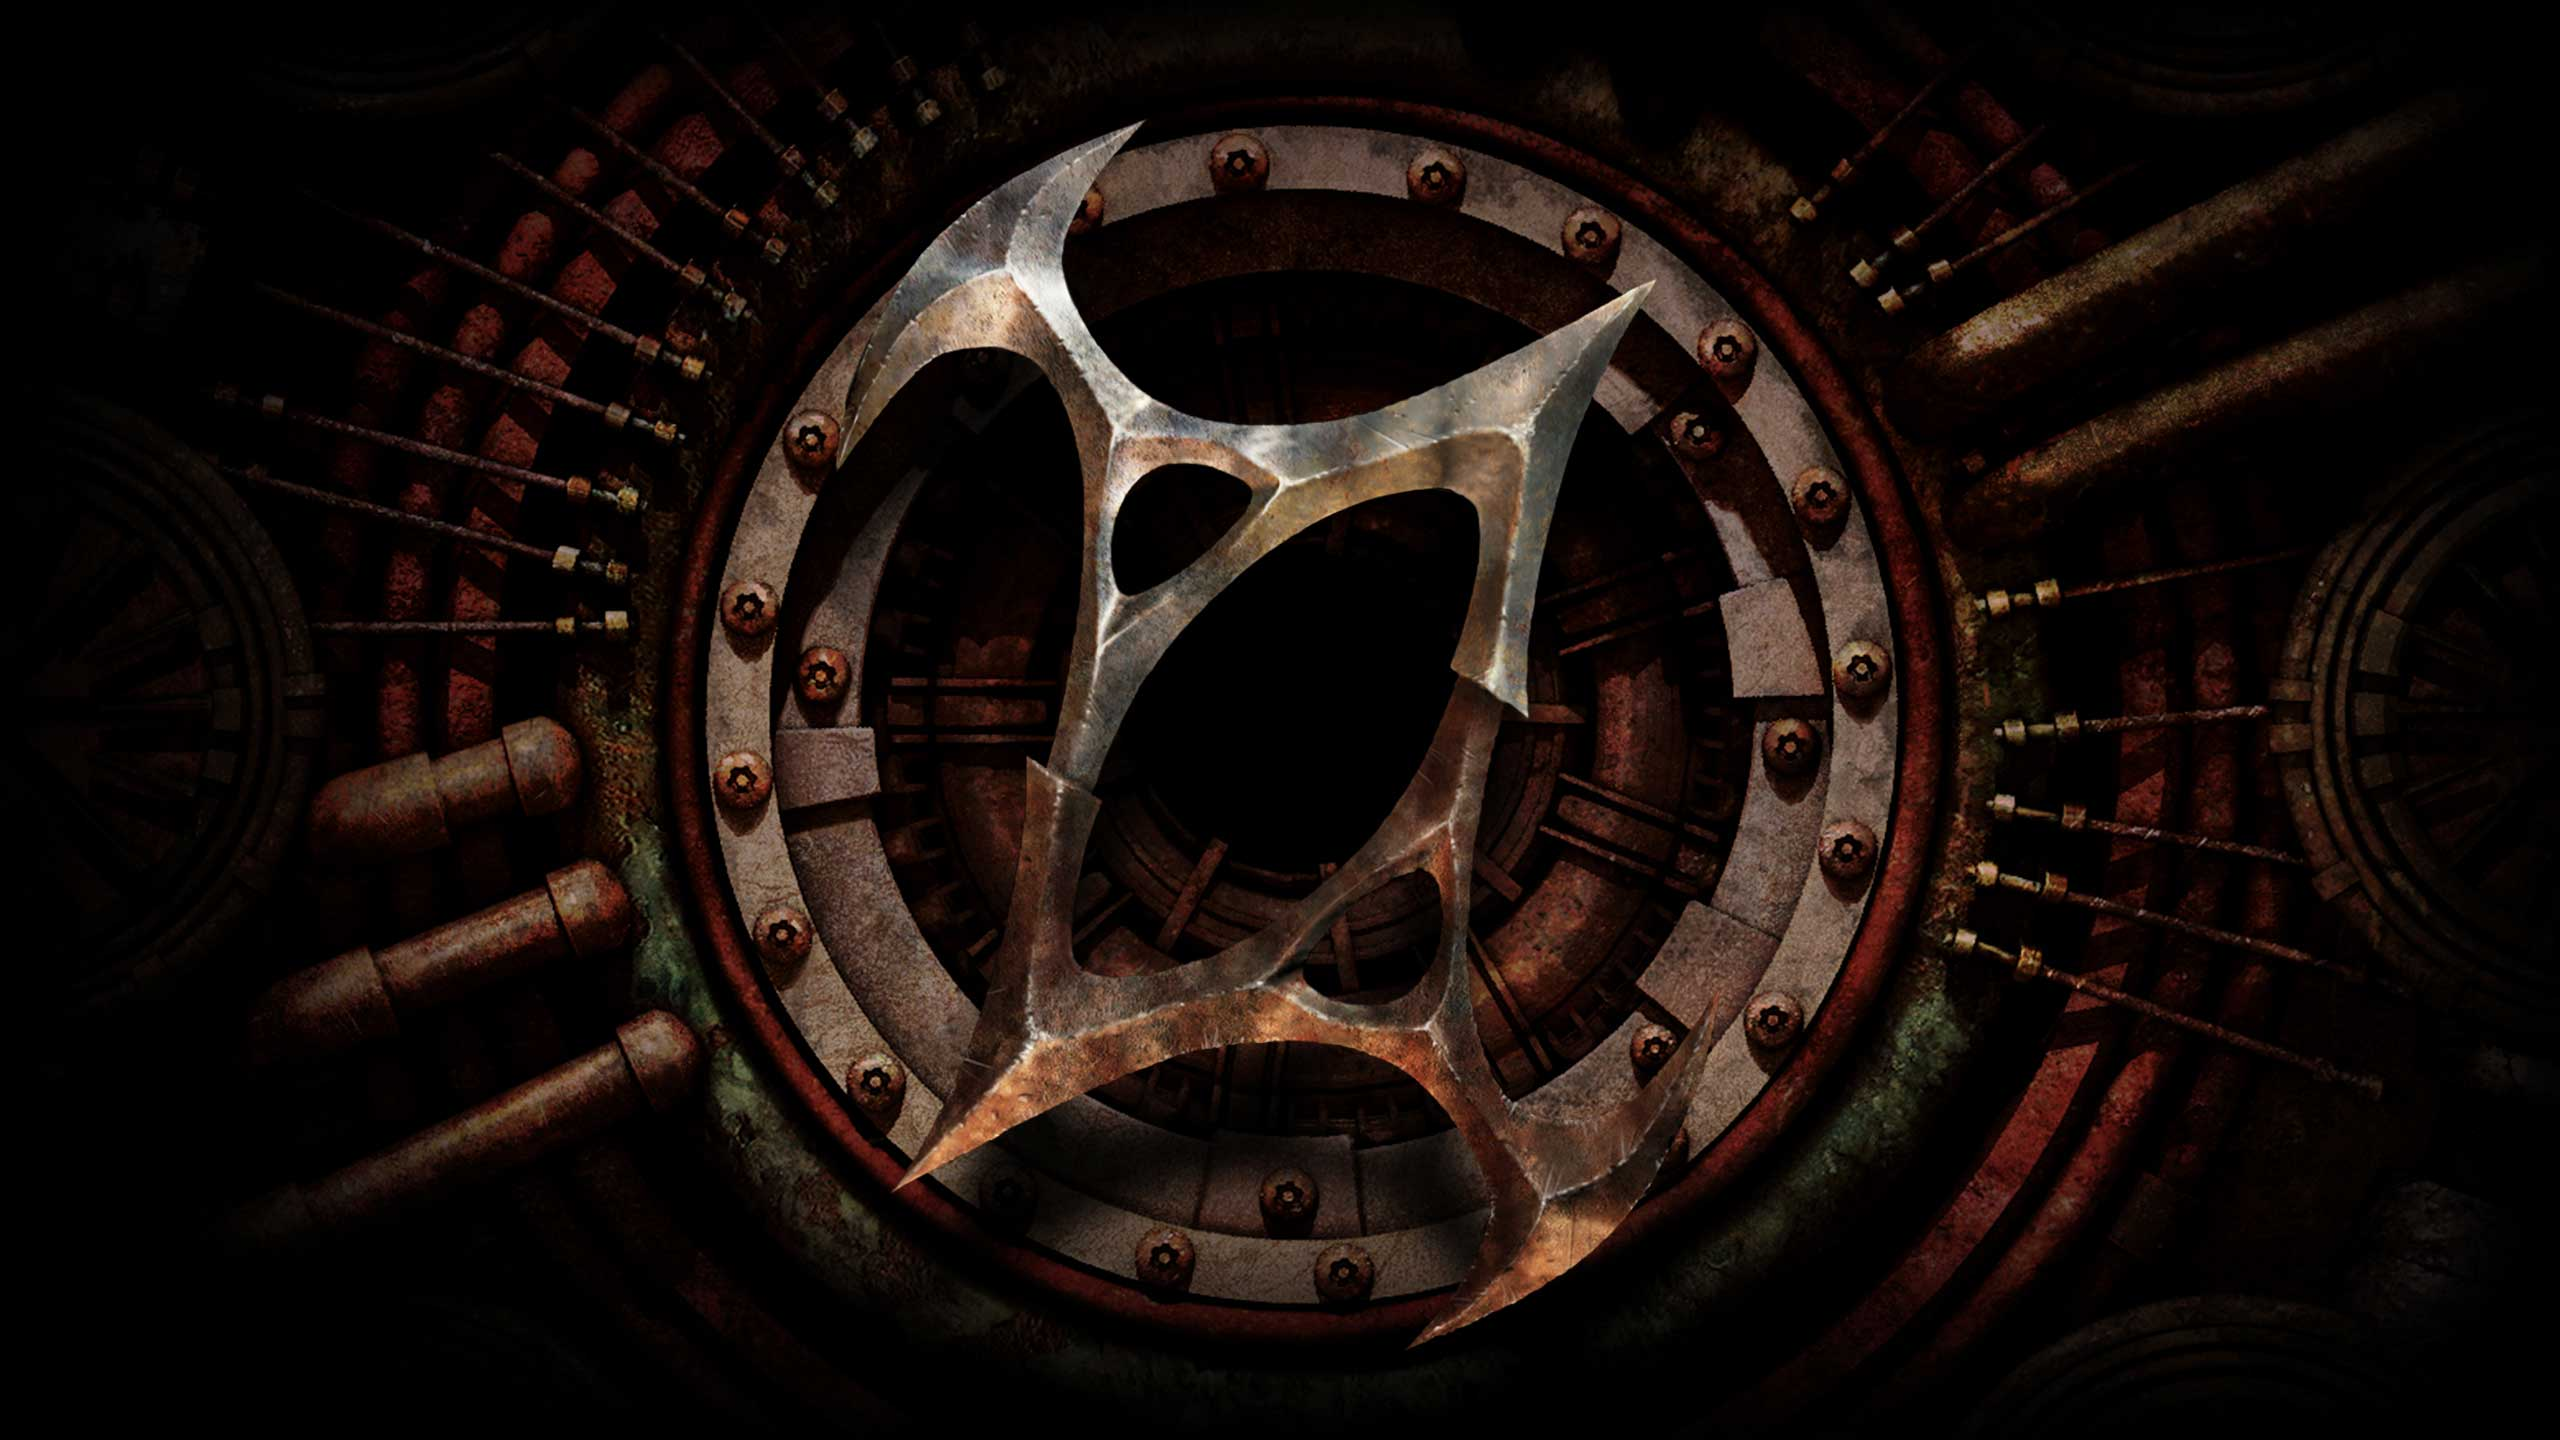 Symbol of Torment, Planescape Torment Enhanced Edition Promotional BG on www.planescape.com